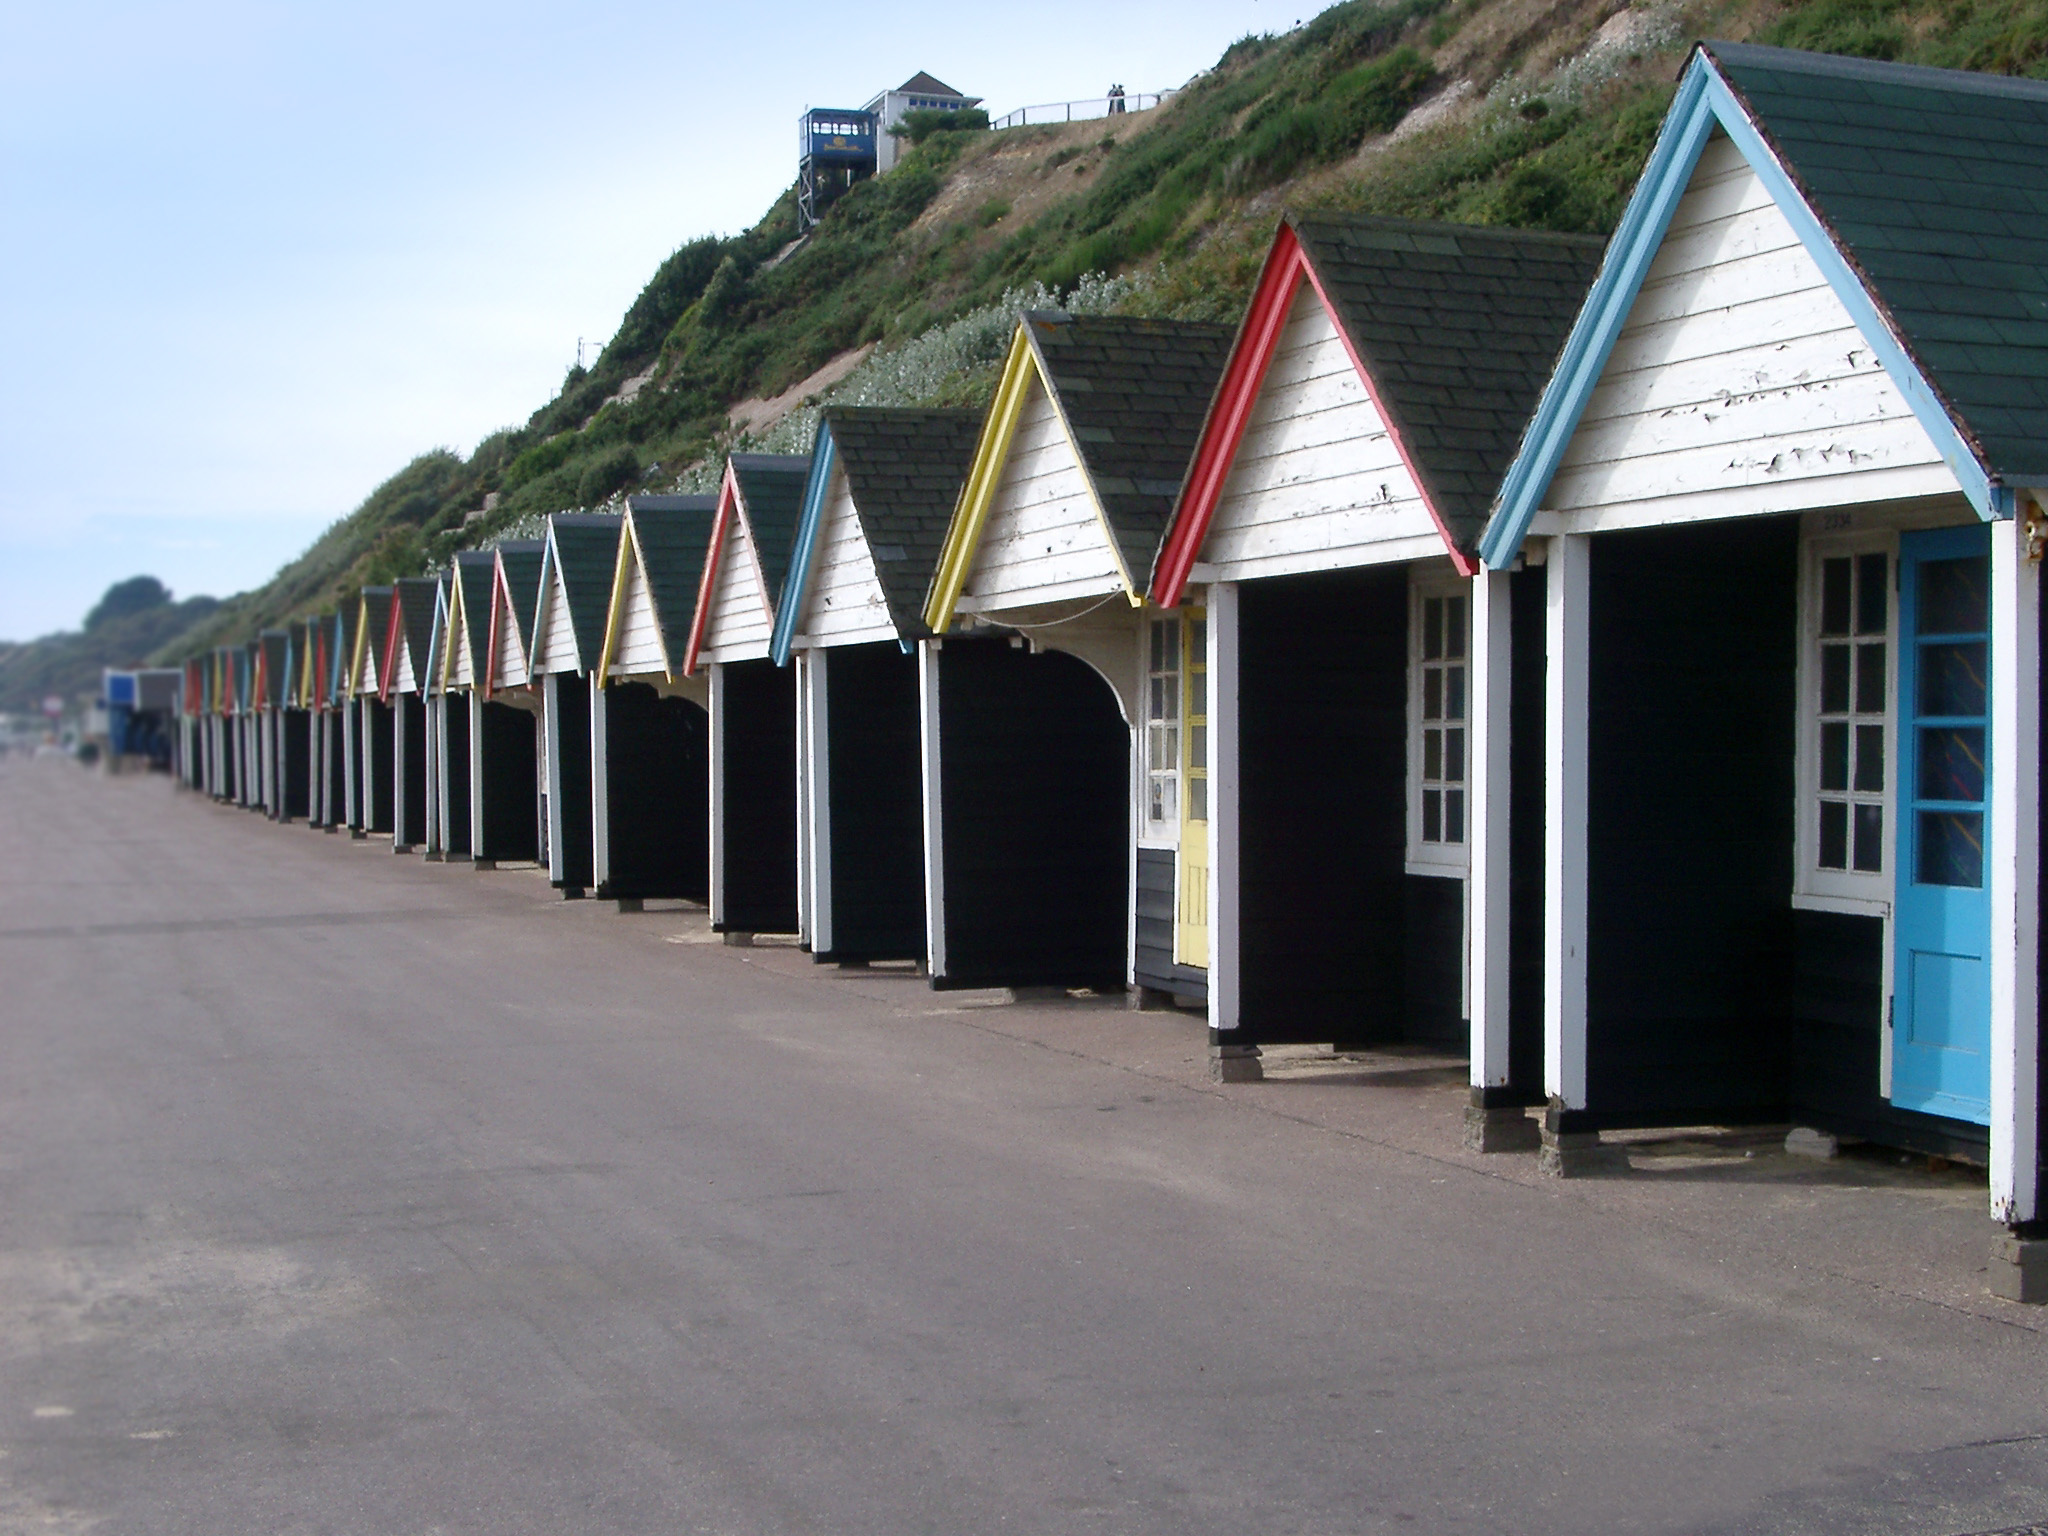 colorful line of beach huts on bournemouths promenade seafont